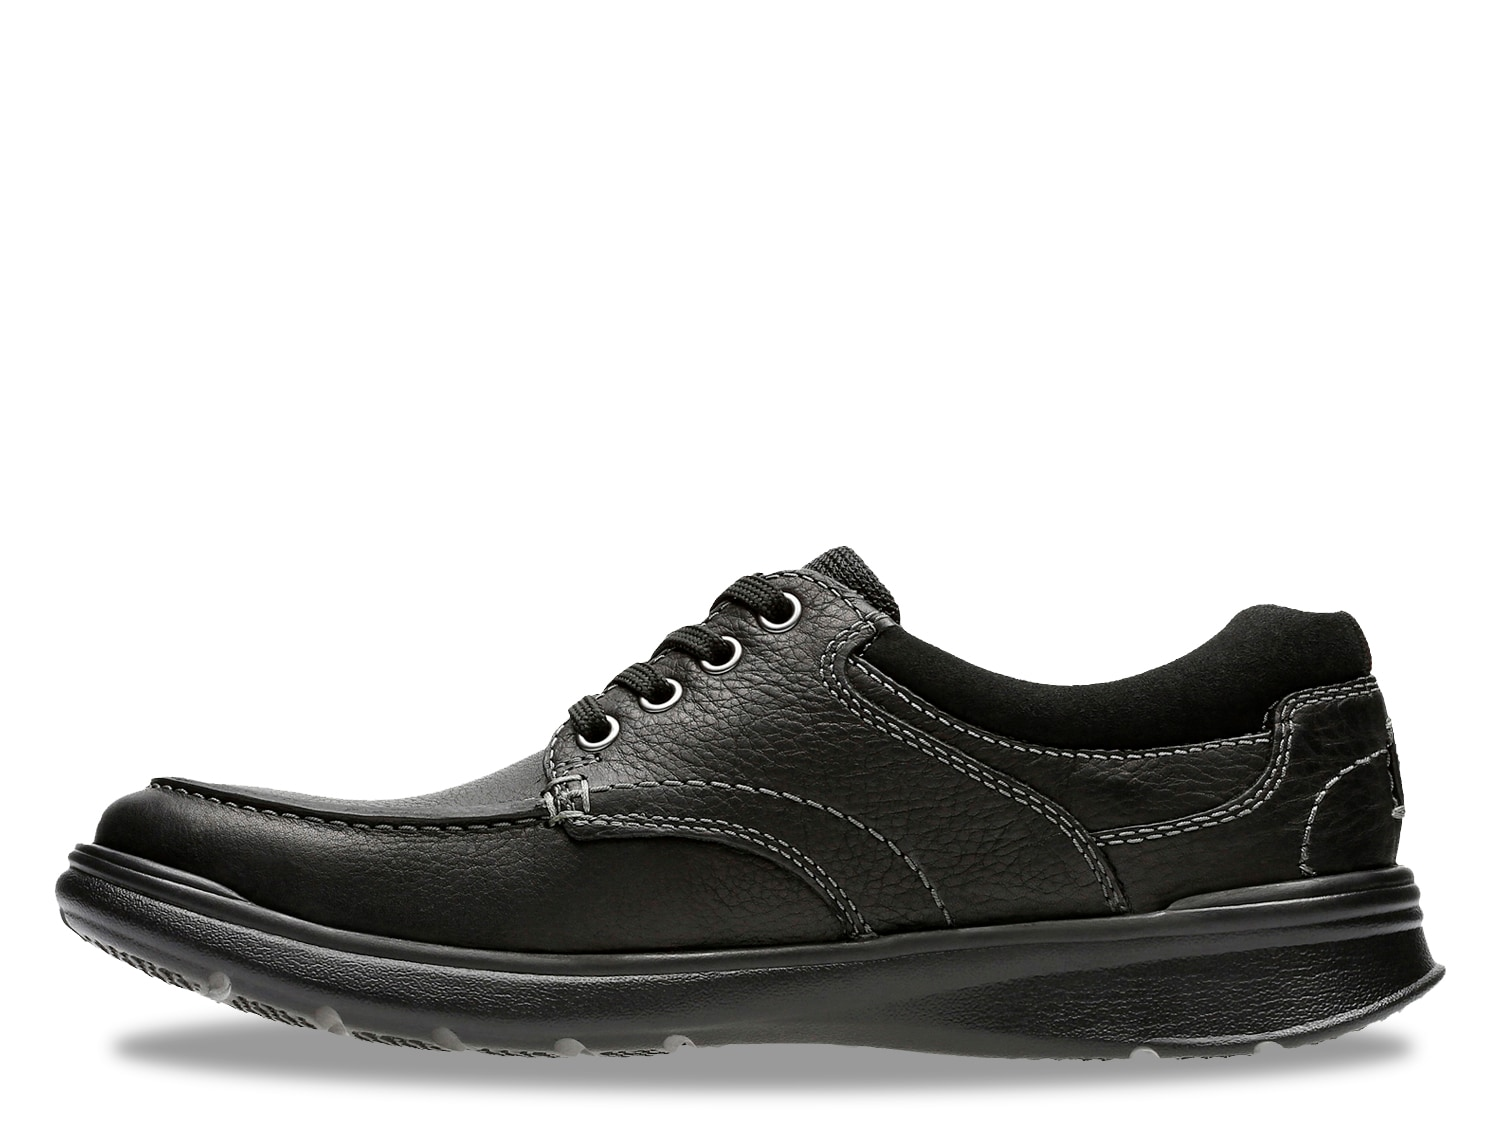 Clarks Cotrell Edge Oxford   DSW